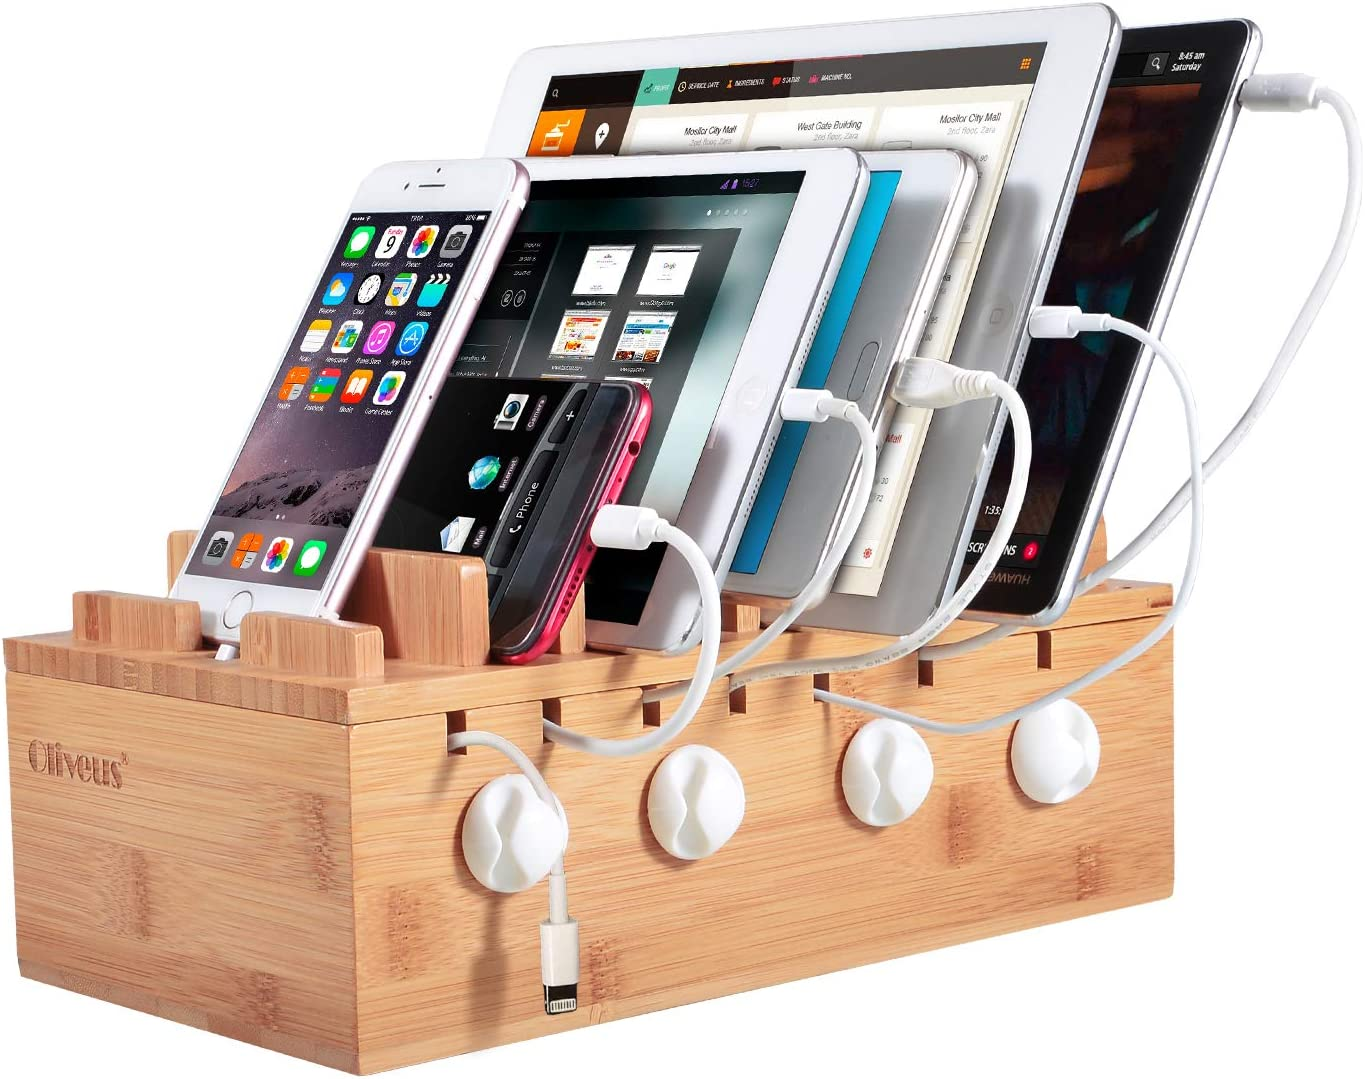 Desktop Mobile Charging Station /& Cables Adapters USB Hubs Power Strip Organizer